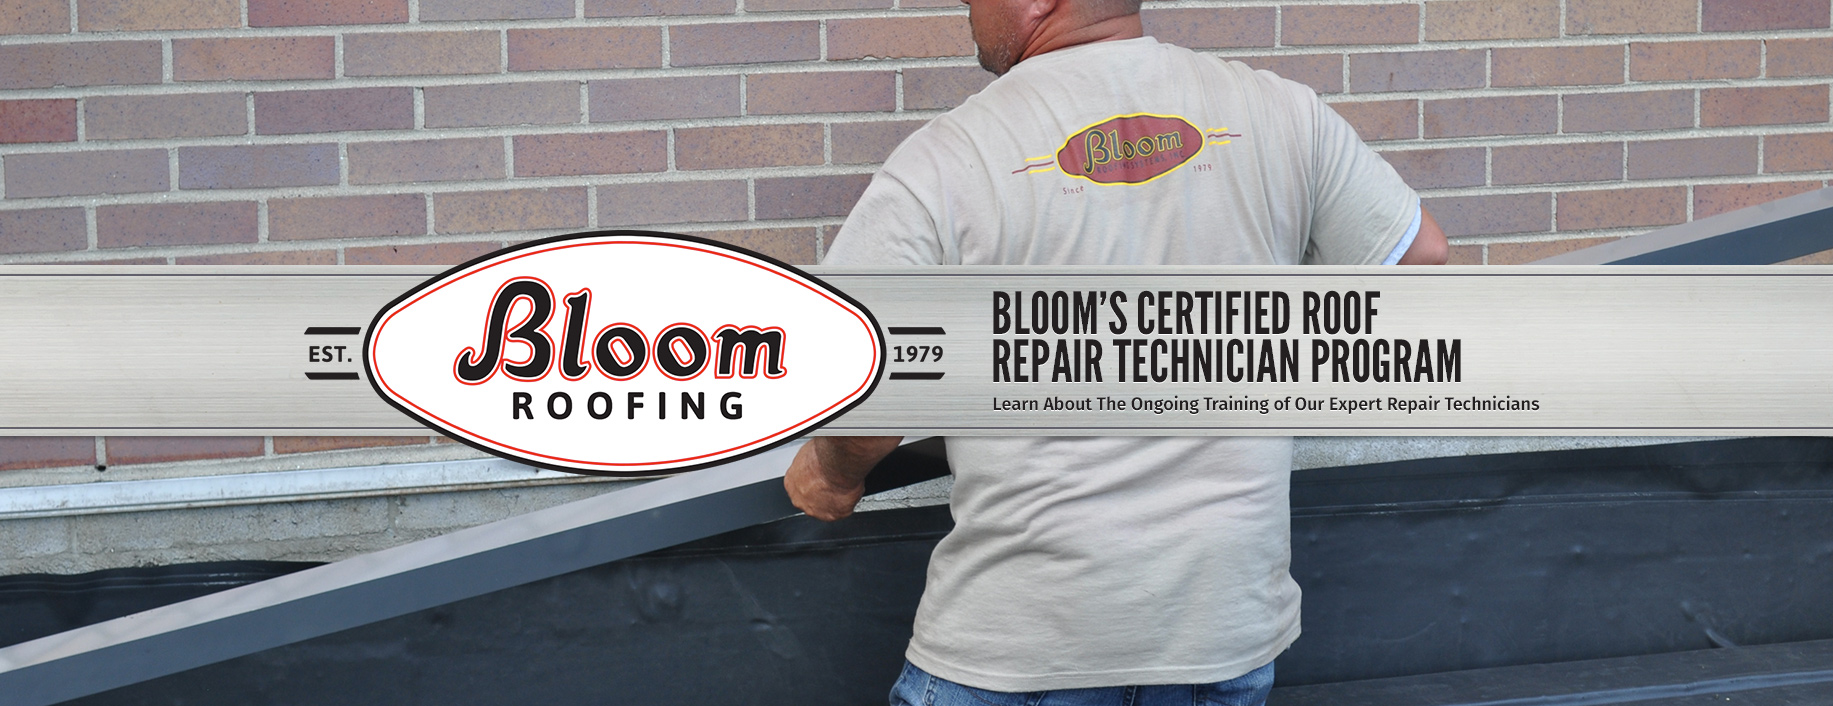 Commercial Roofing Contractors | Bloom Roofing